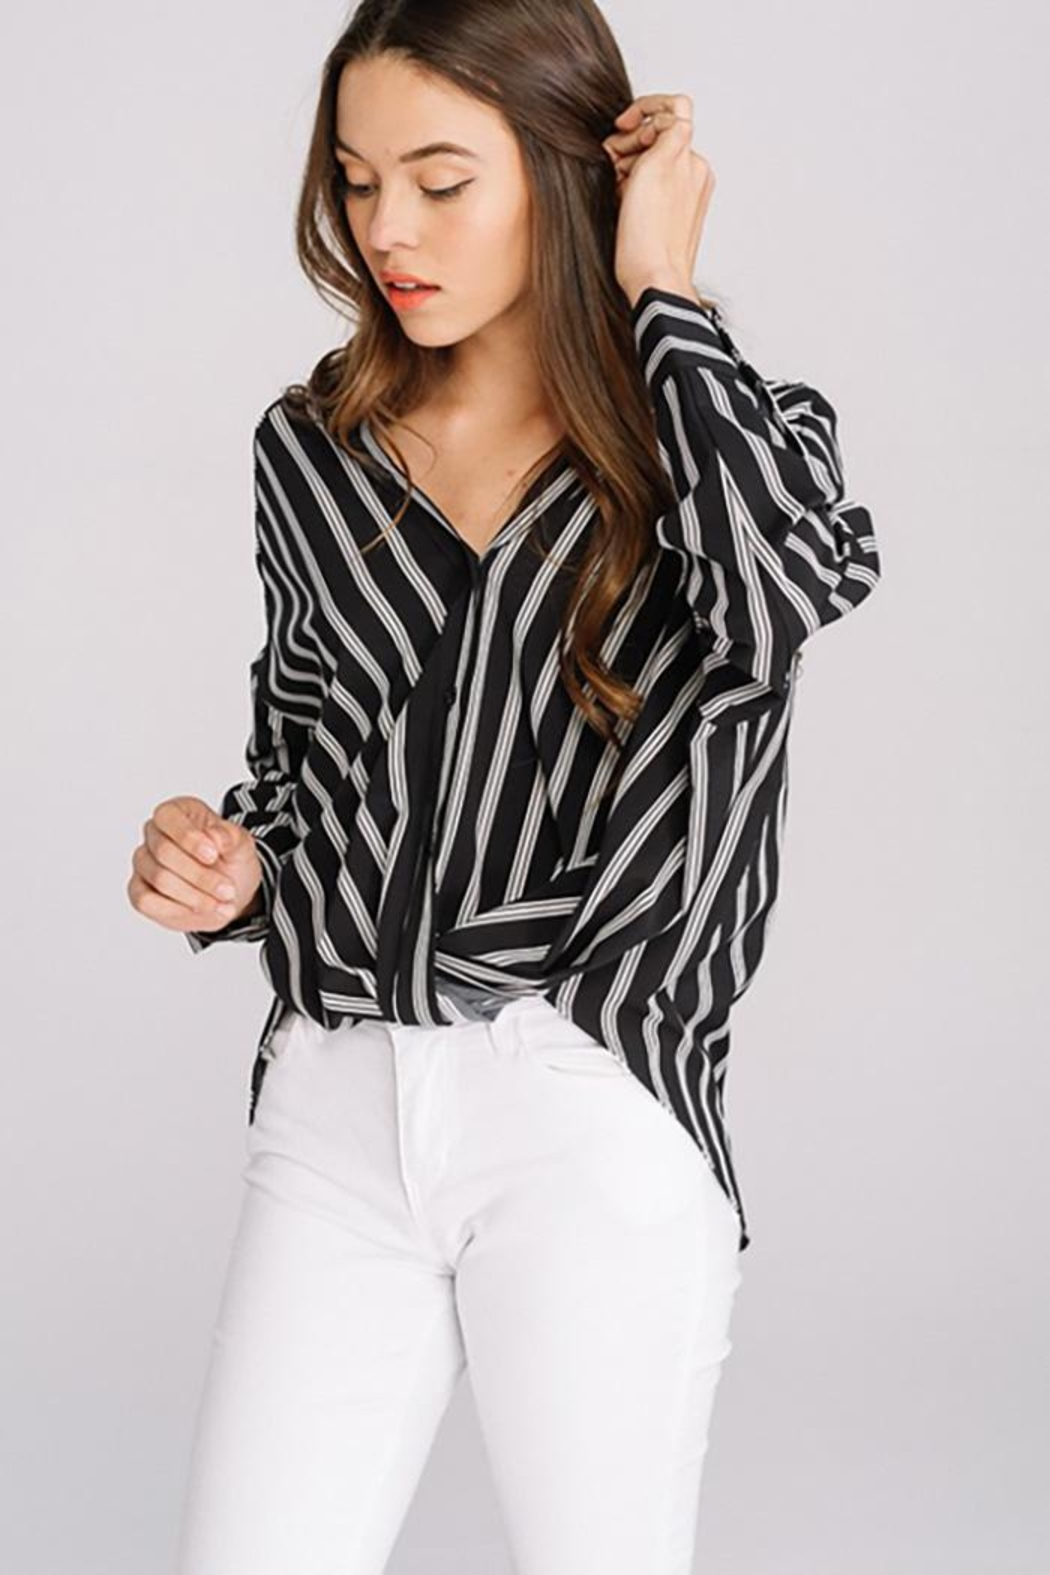 Main Strip Striped Long Sleeve - Back Cropped Image